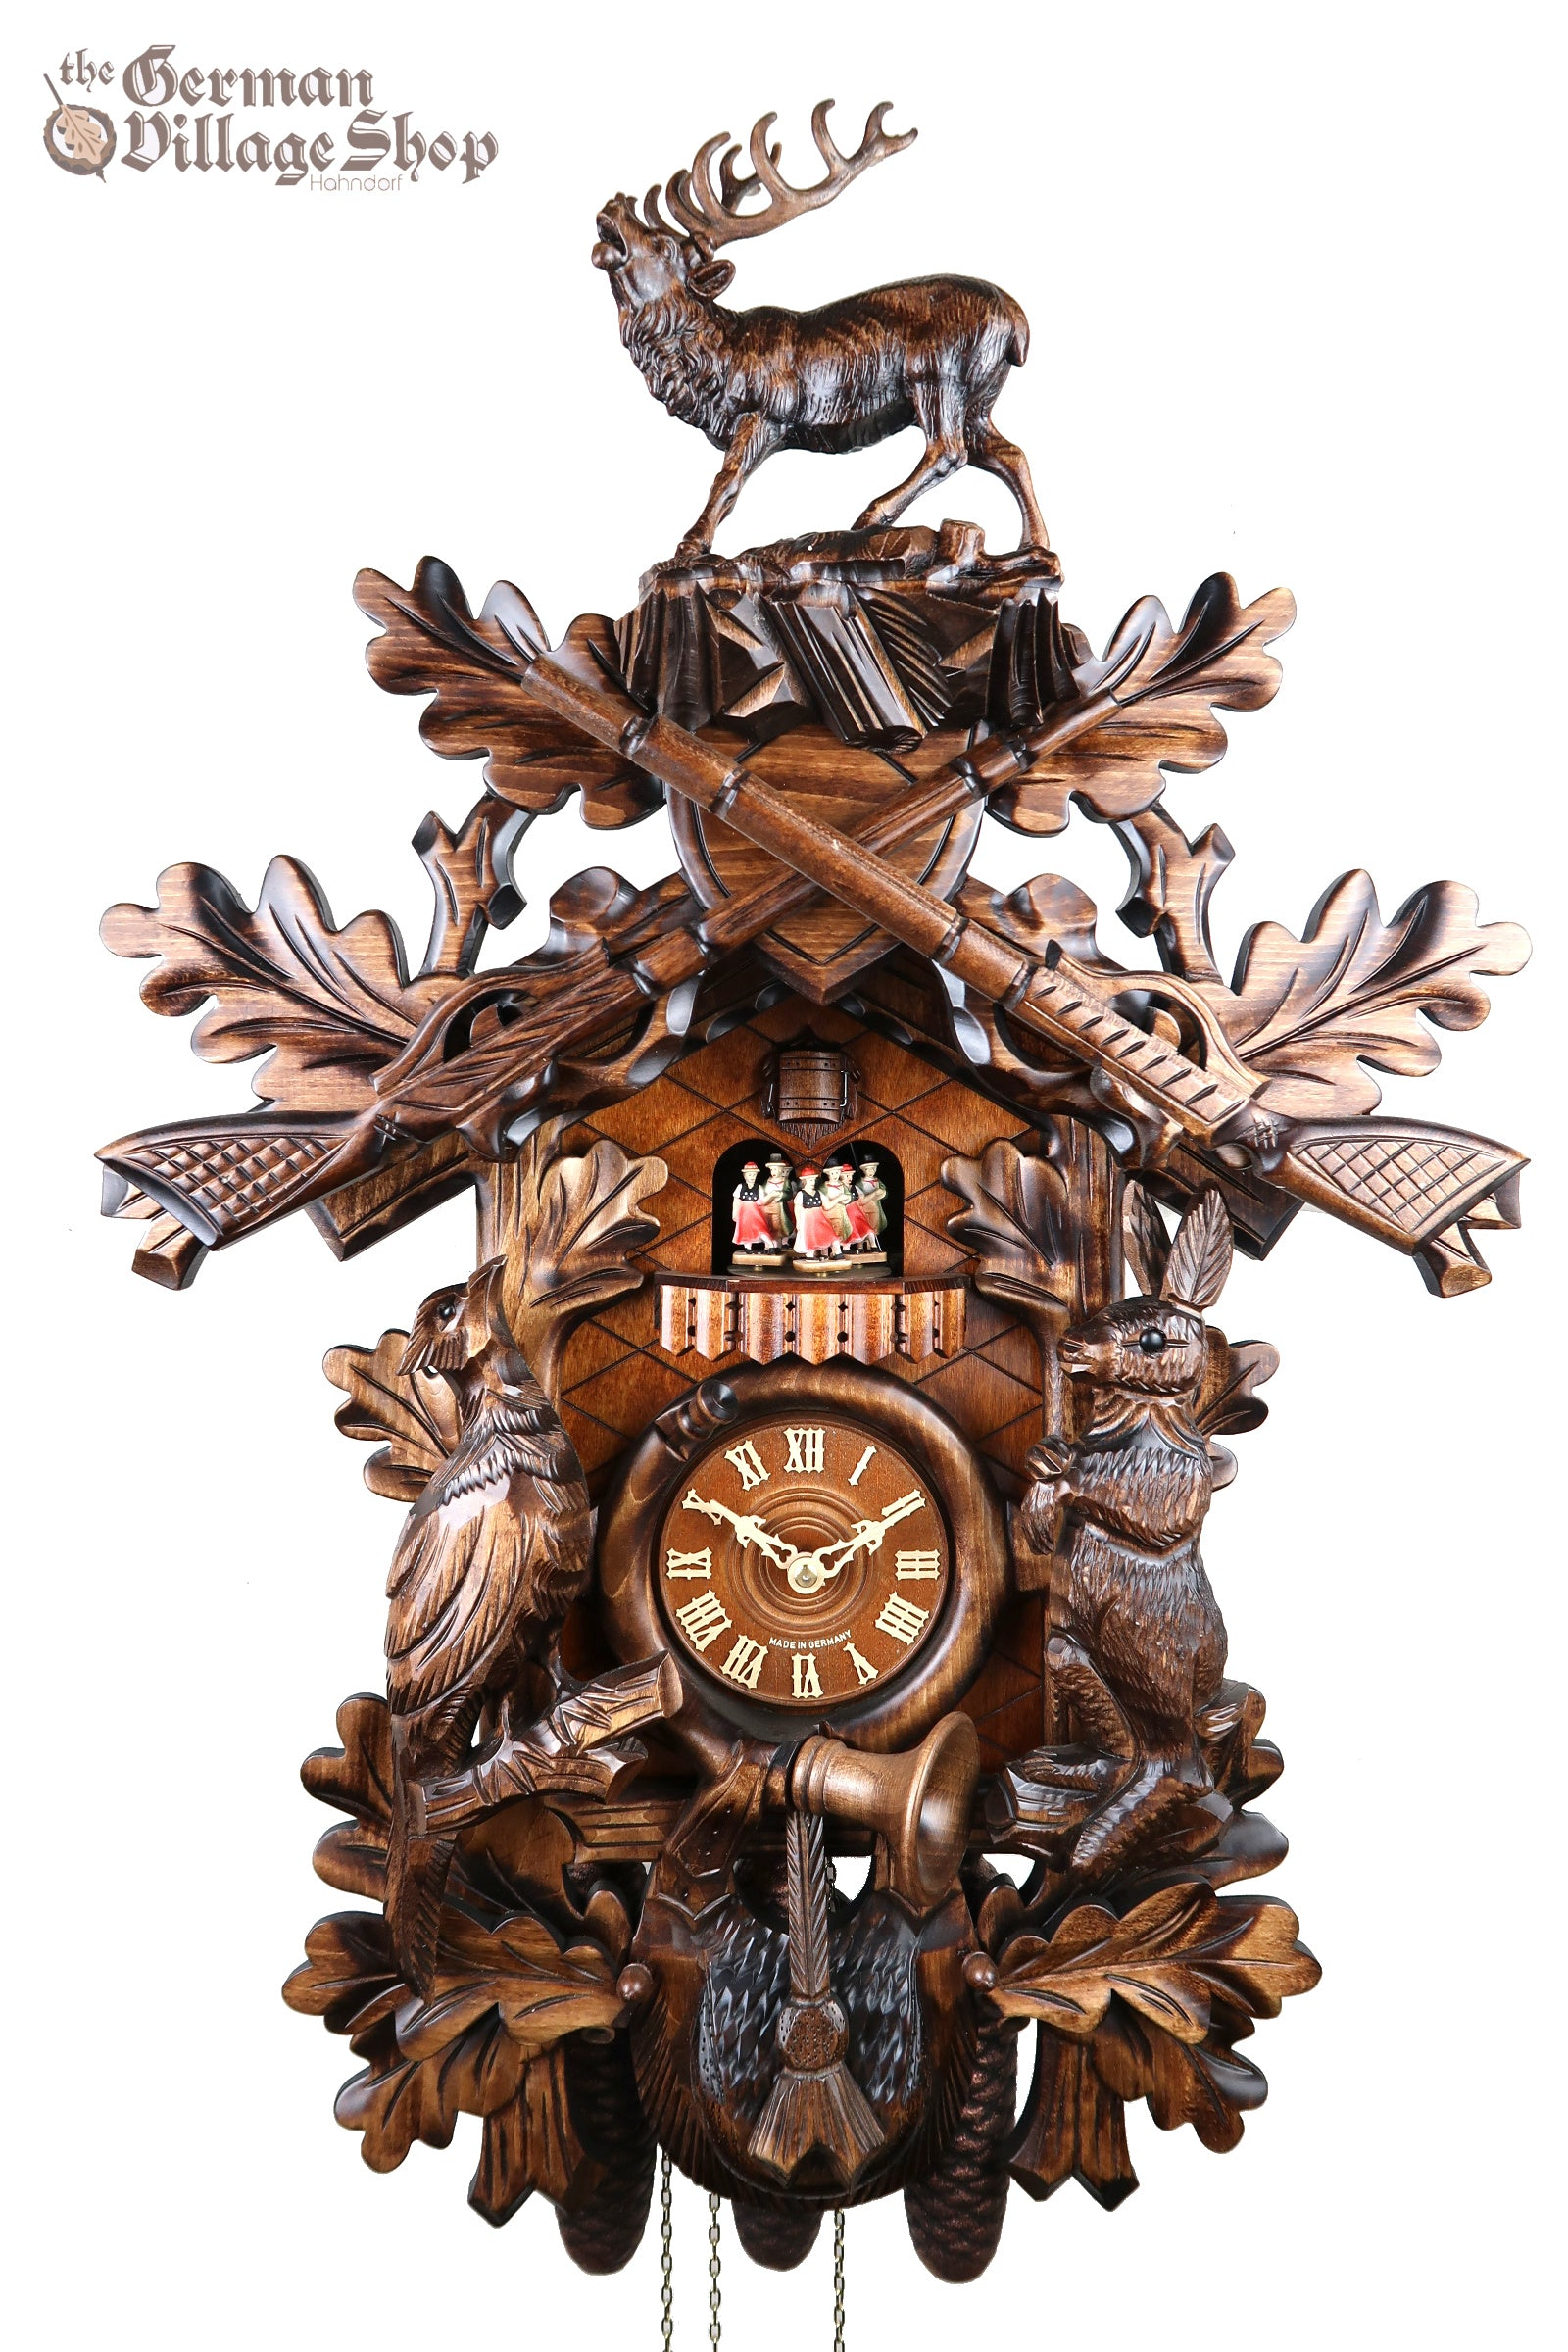 Hones cuckoo clock The Black Forest Germany Wooden Carving stag and hunting scene